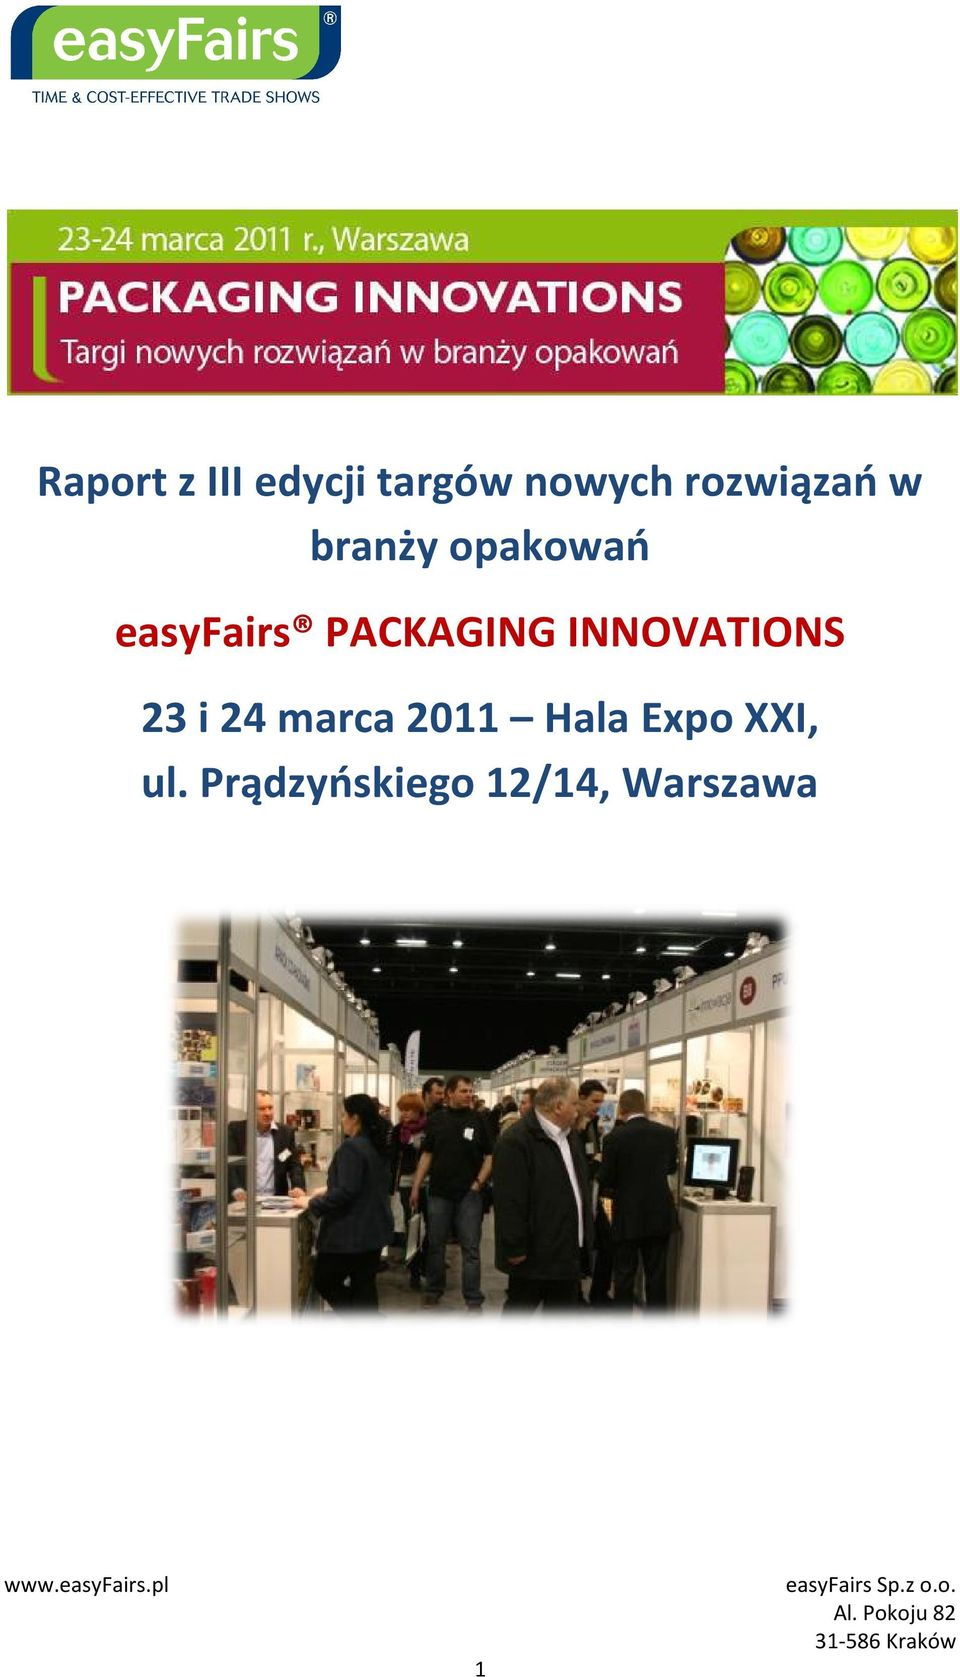 easyfairs PACKAGING INNOVATIONS 23 i 24 marca